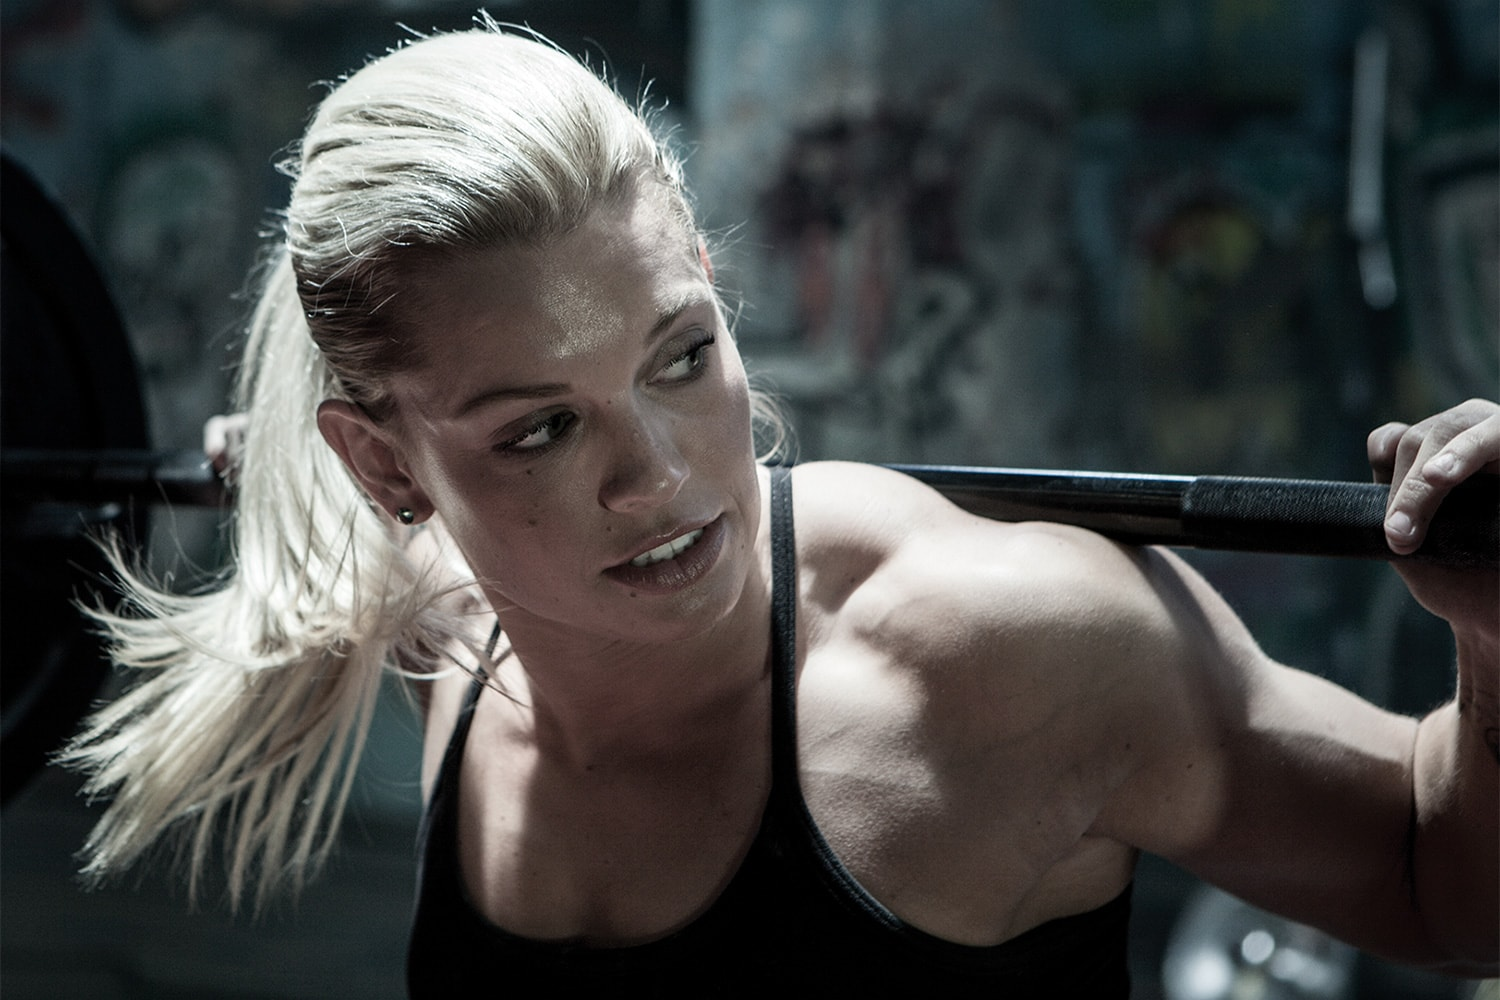 Athlete-female-lifting-weights-crossfit-Rod-McLean